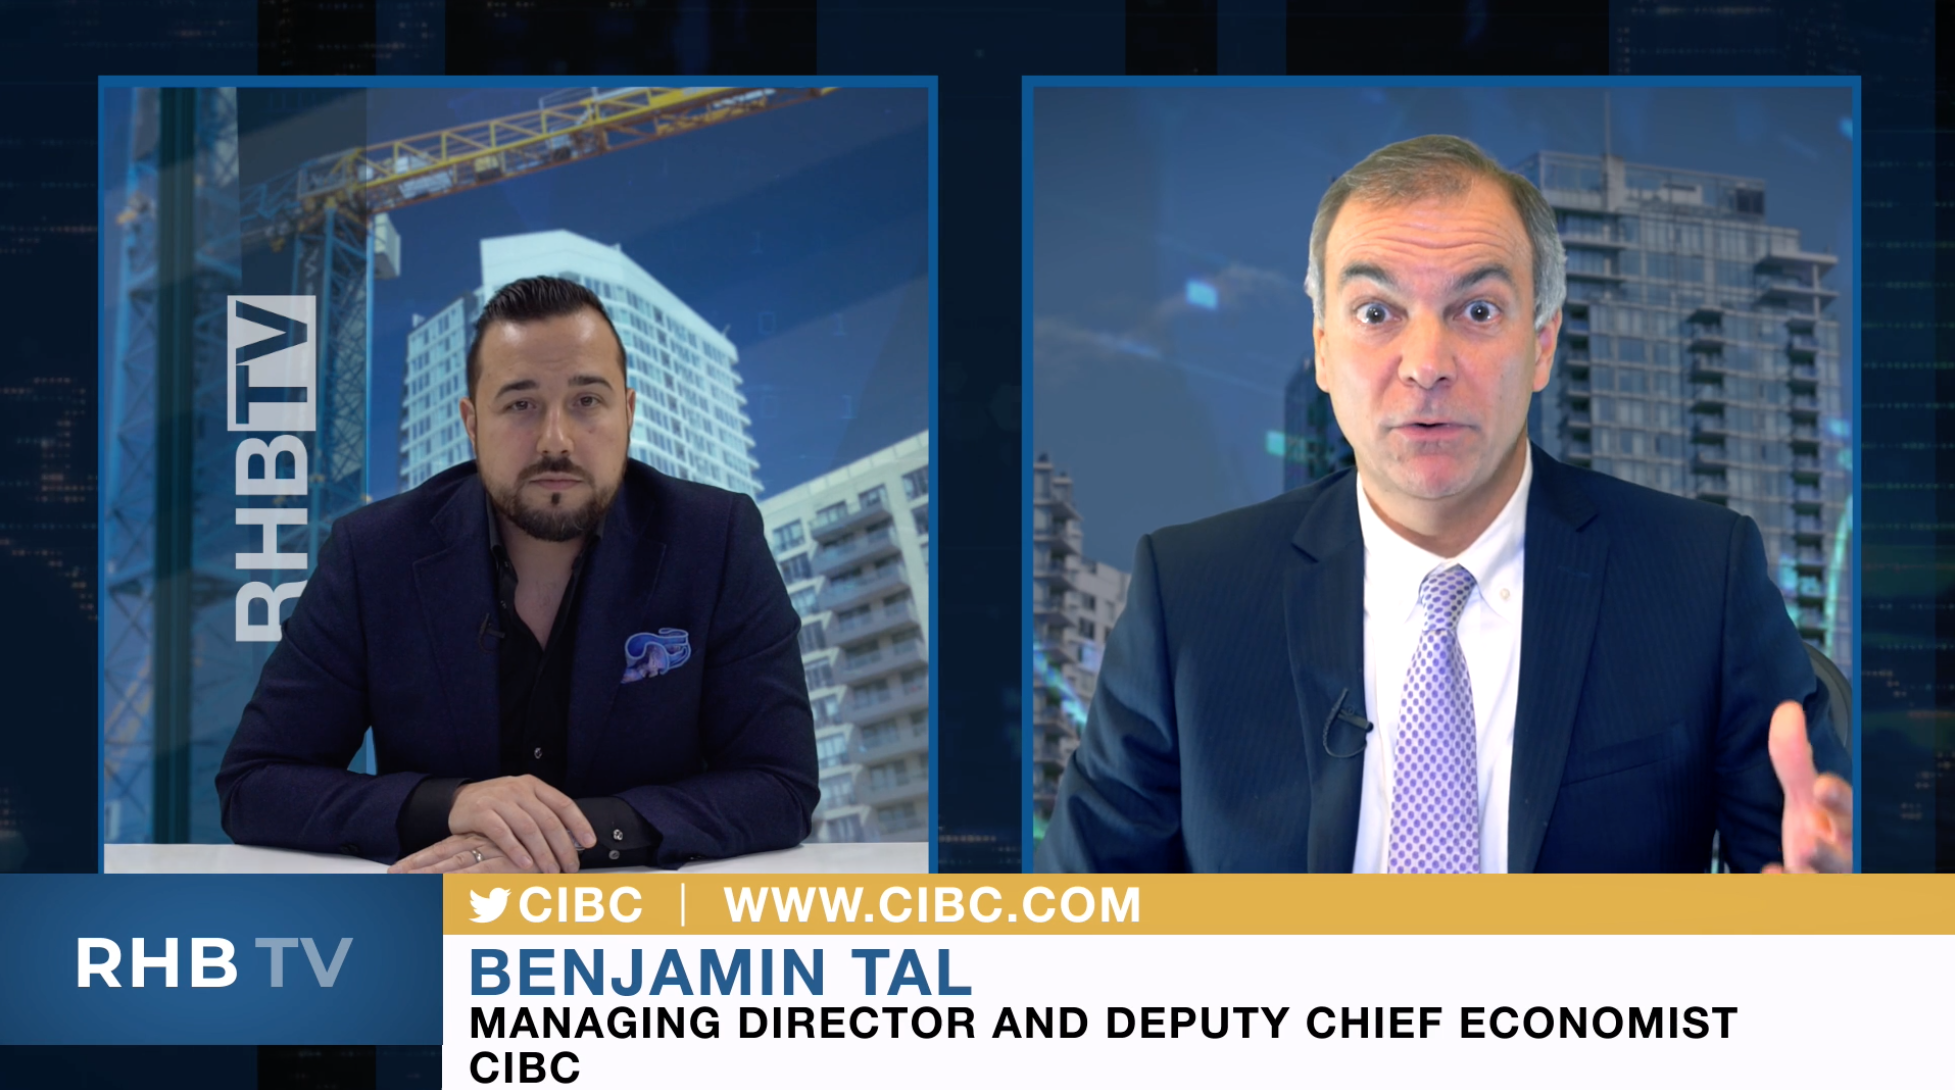 RHB TV: Interview with Benjamin Tal